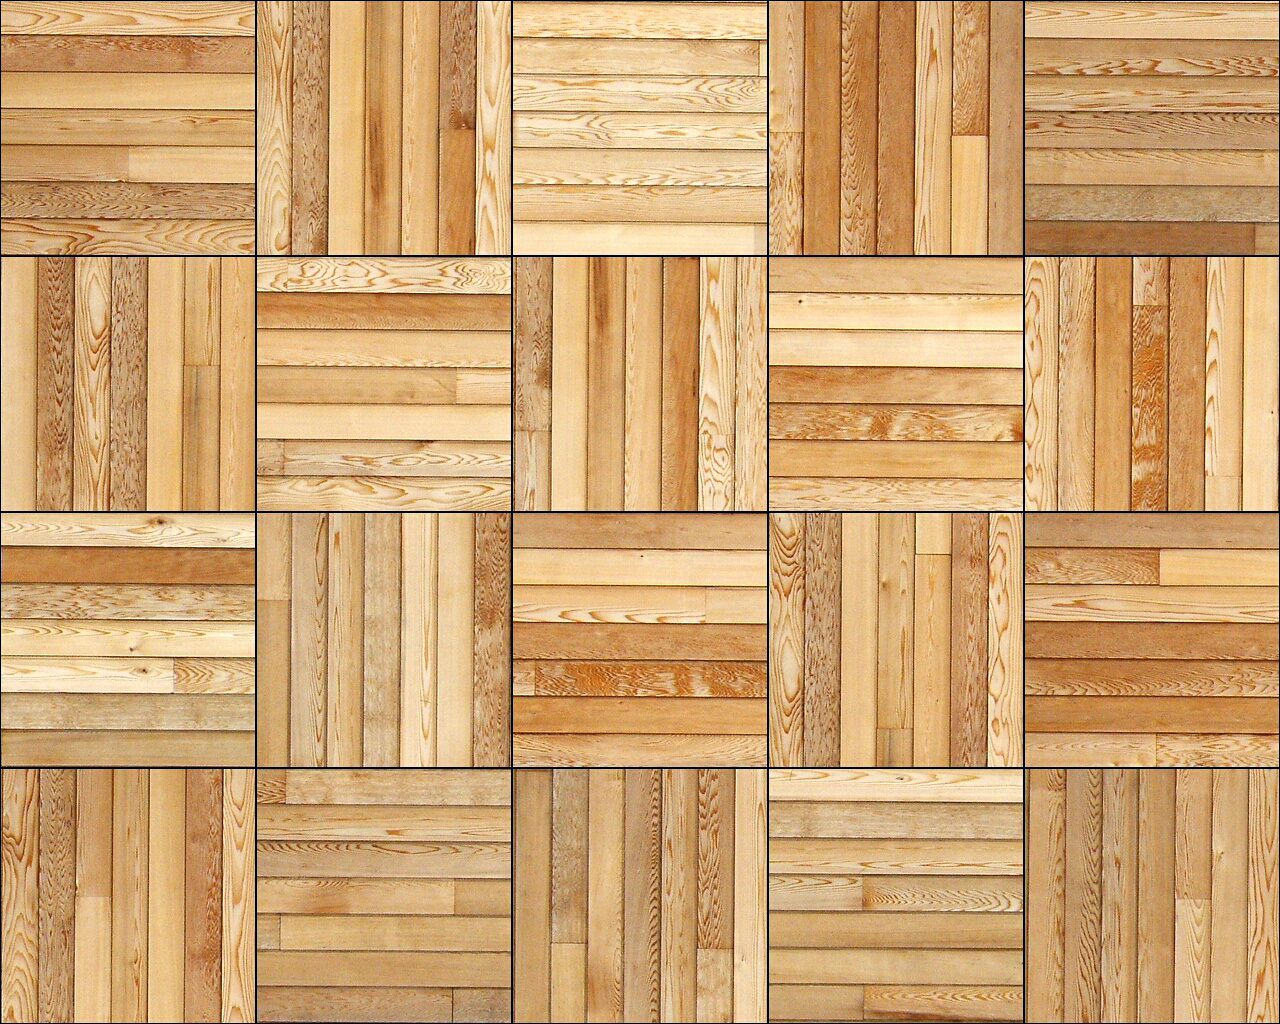 Foundation dezin decor floor tiles design Wood pattern tile